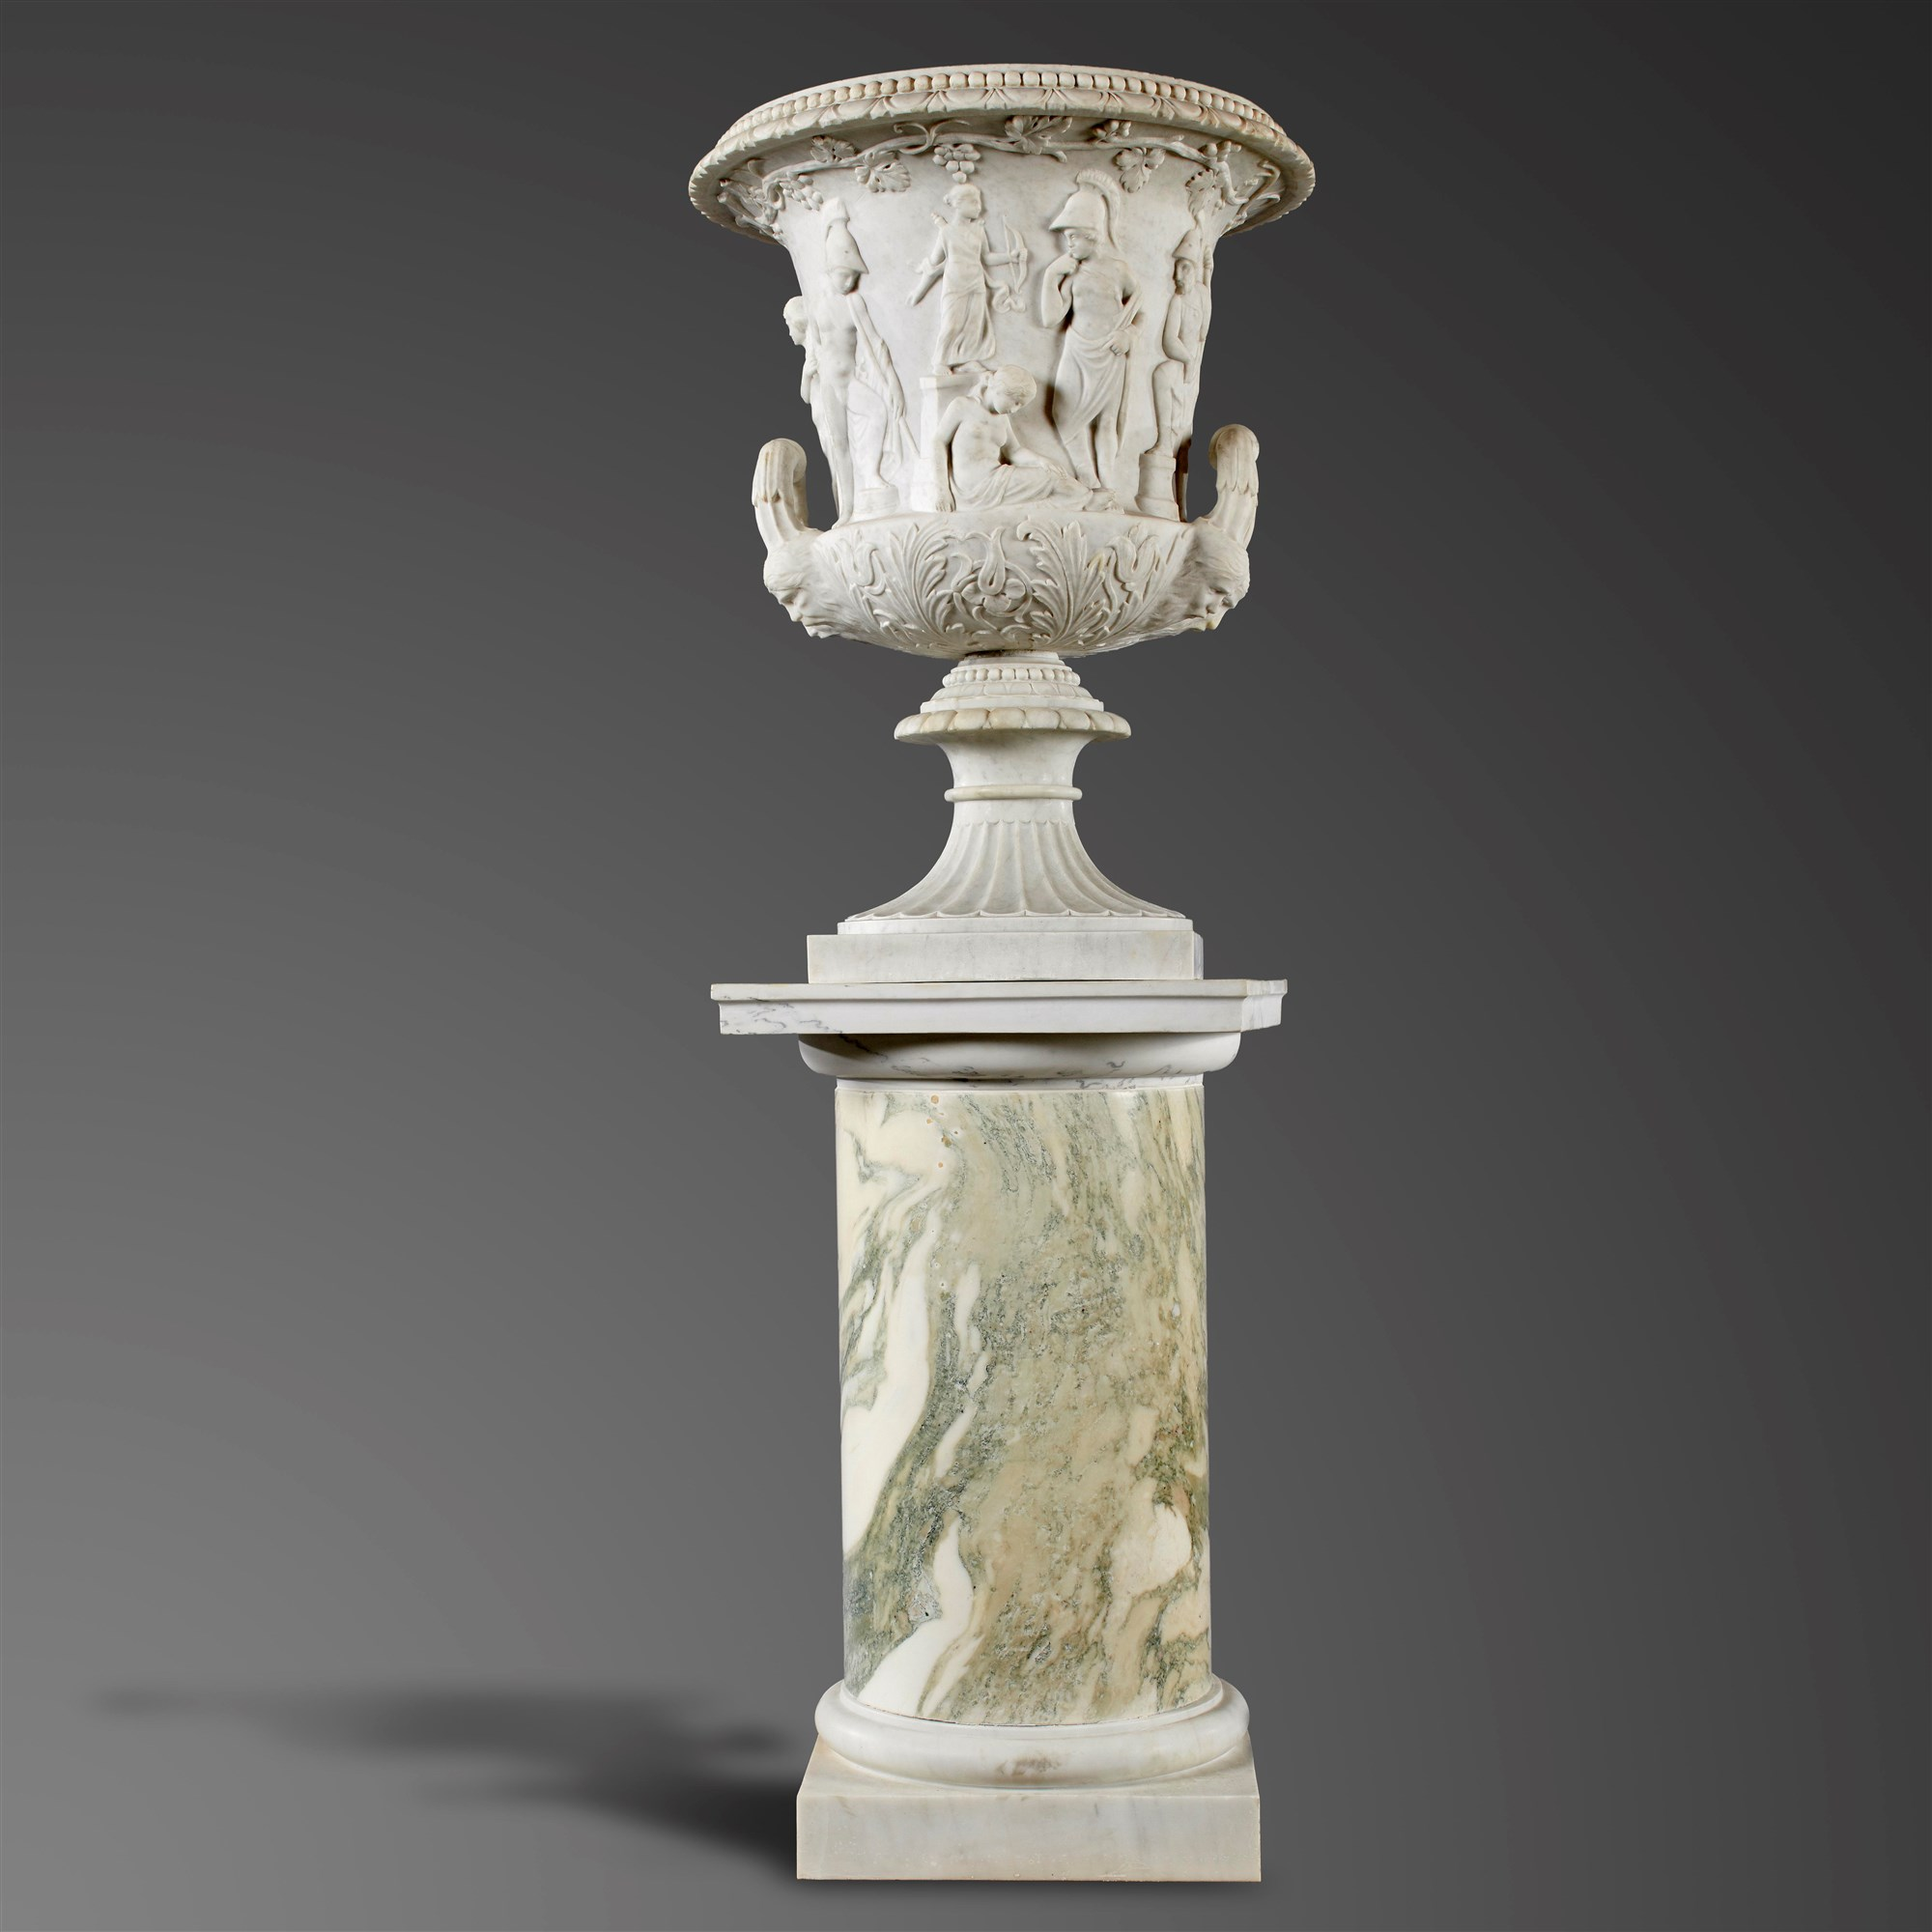 Lott 21; A carved white marble Medici Urn